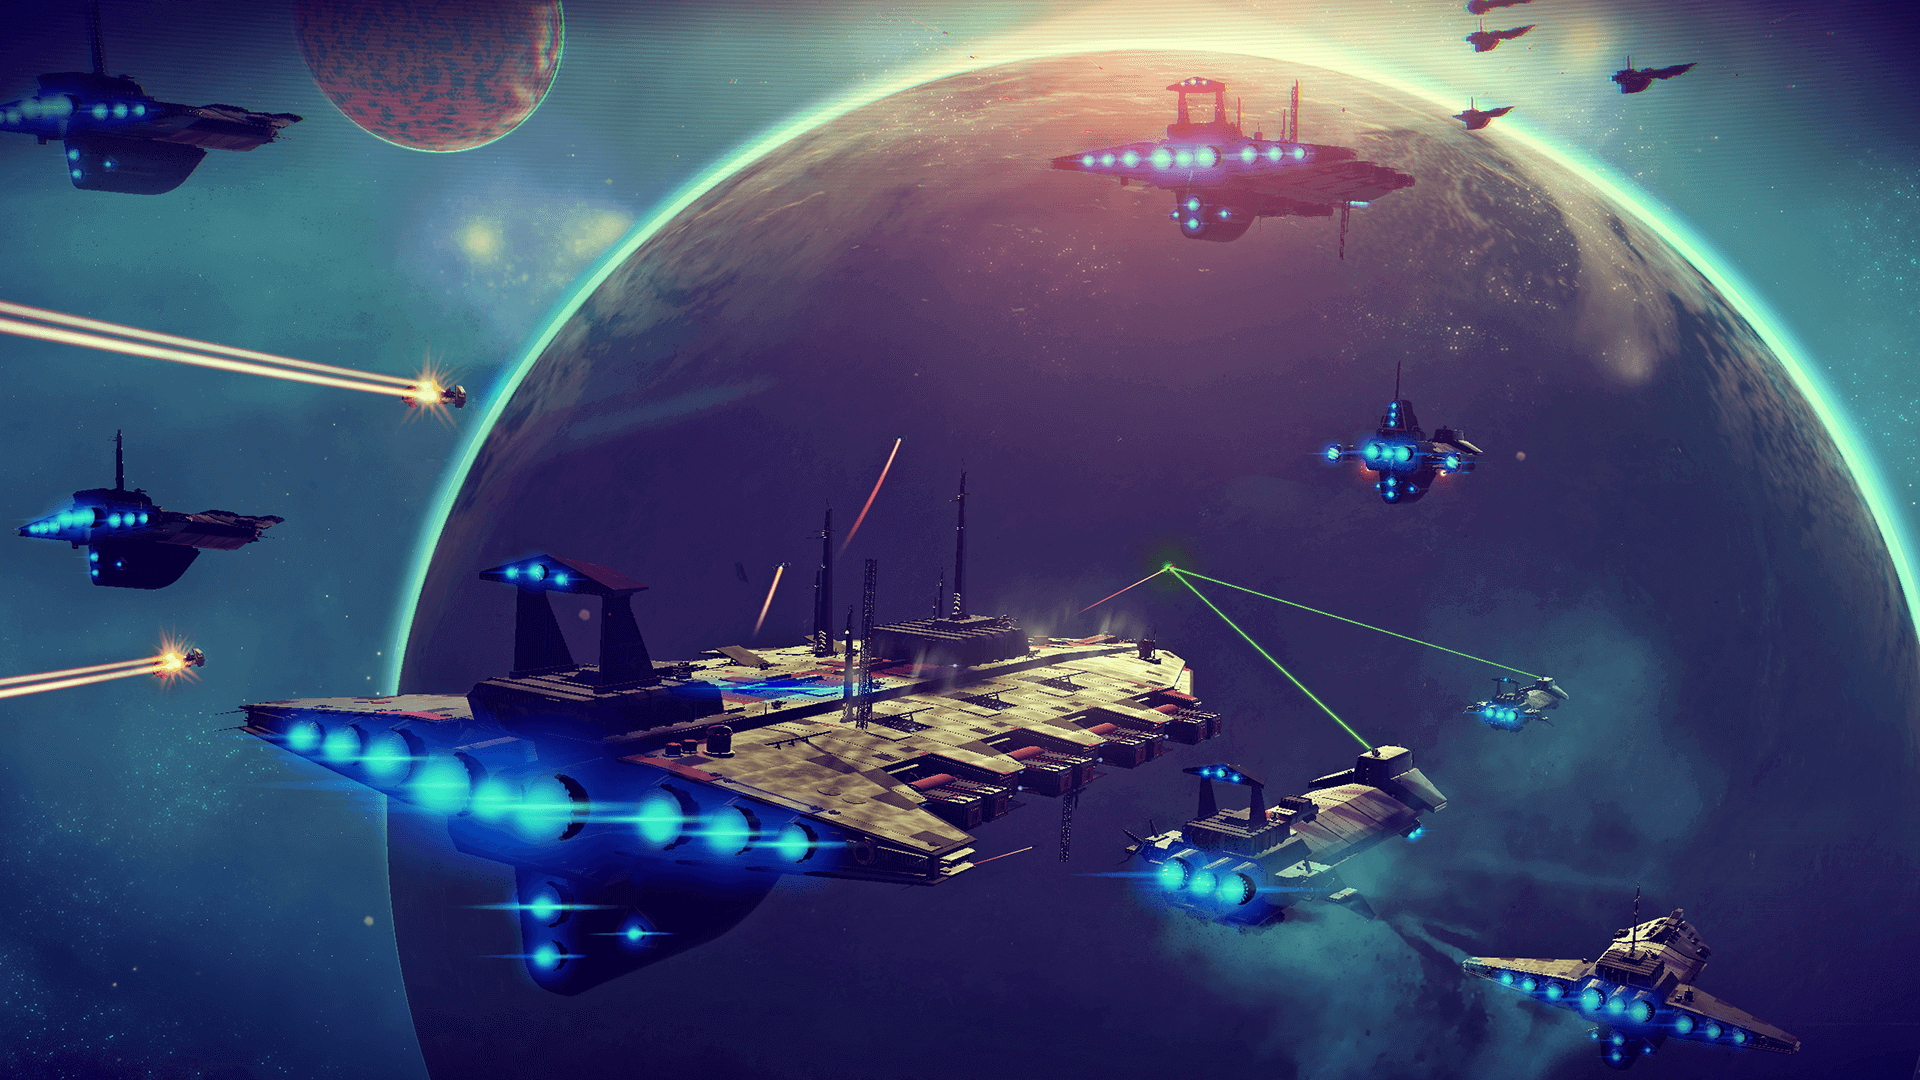 A No Man's Sky Player Is Documenting Thousands Of Black Holes